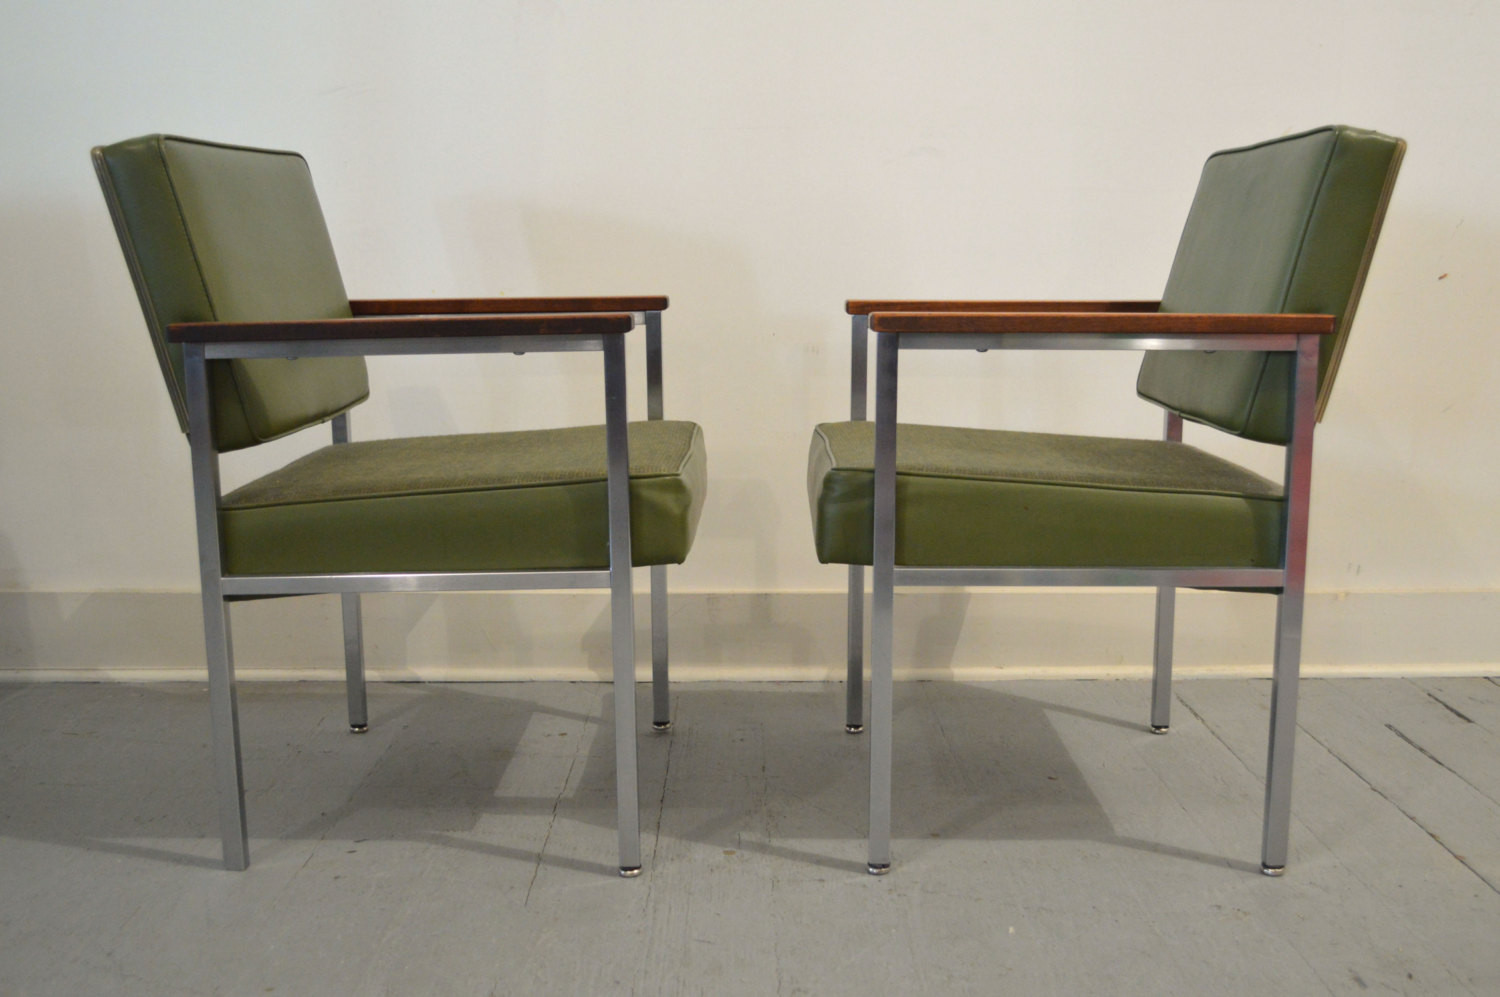 Best ideas about Mid Century Office Chair . Save or Pin Set of Two Vintage Mid Century fice Chairs in Green by All Now.